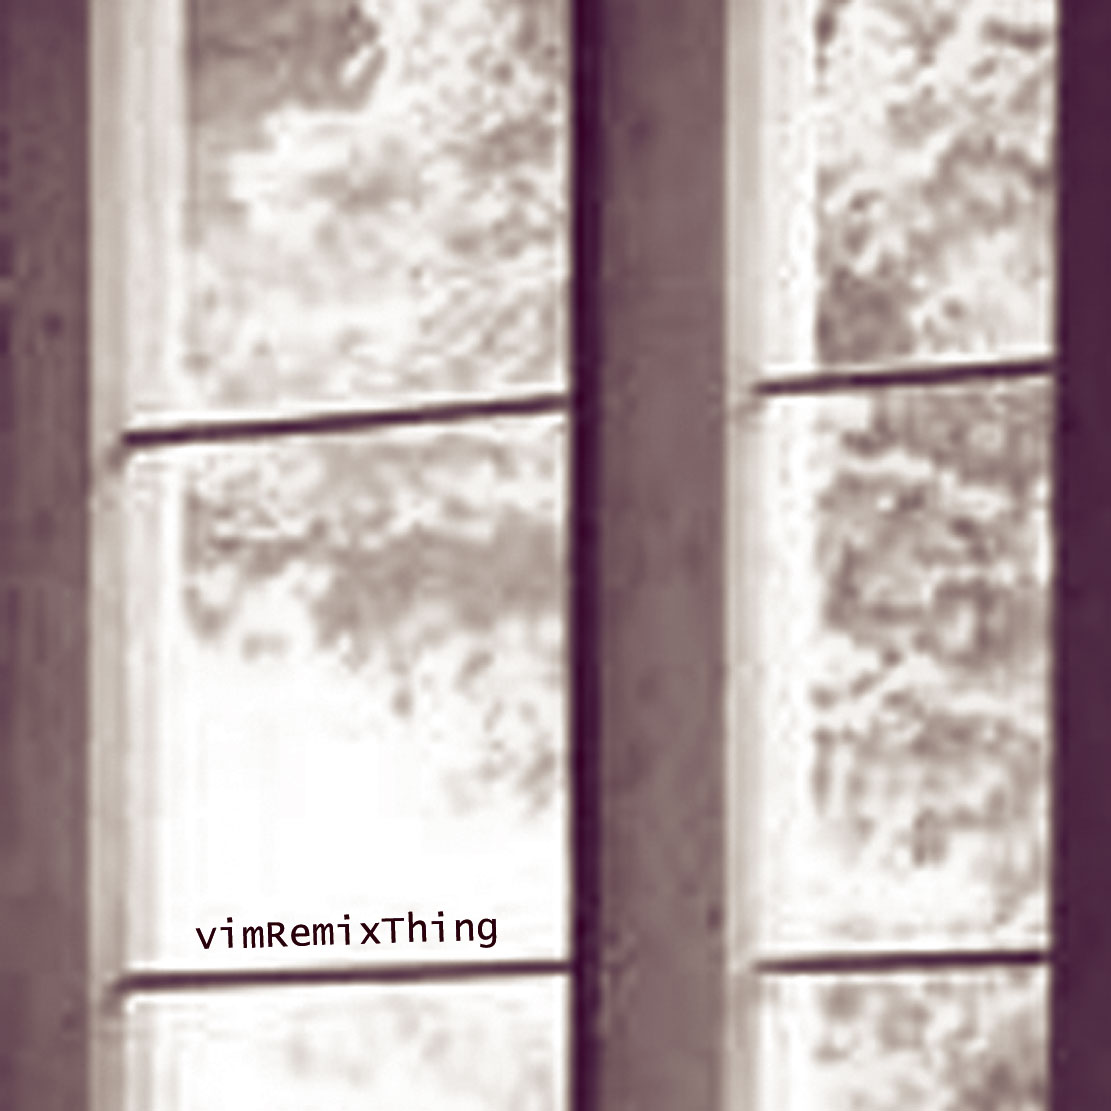 Cover of Remixconsonantthing EP